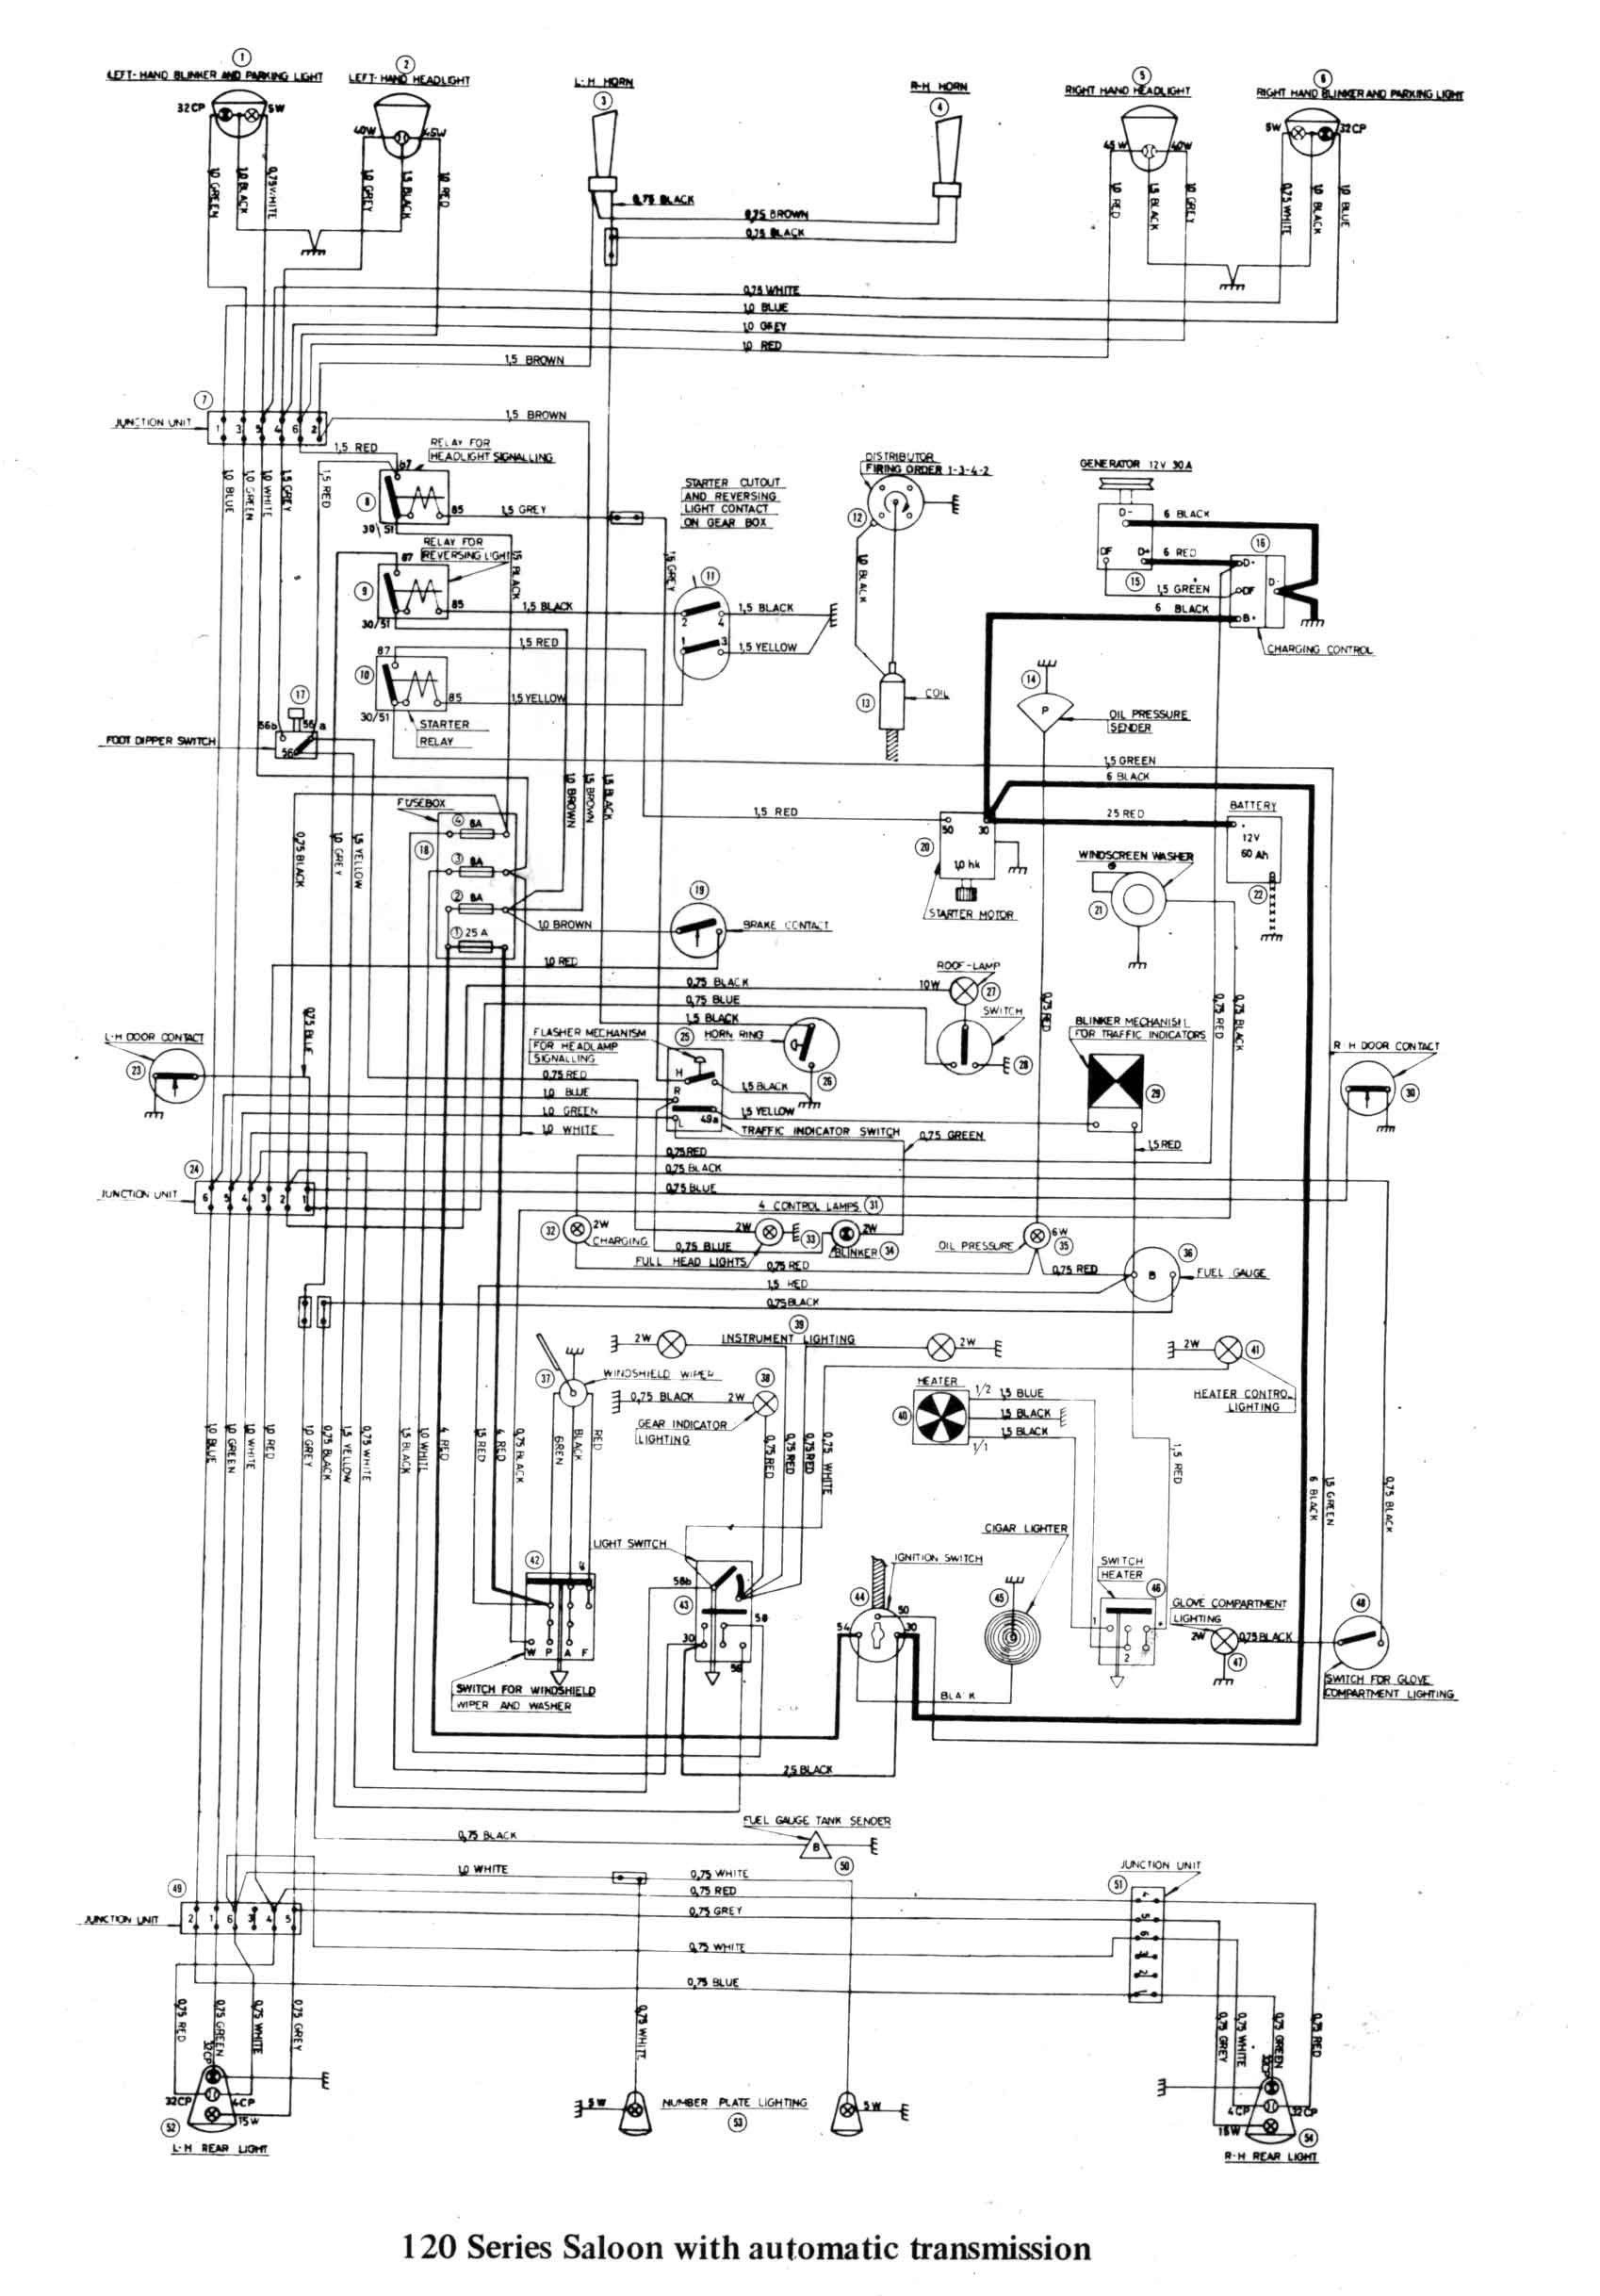 Automotive Wiring Diagram Practice New Peterbilt Model 348 359 362 Wiring  Diagram Car Tuning Wire Center